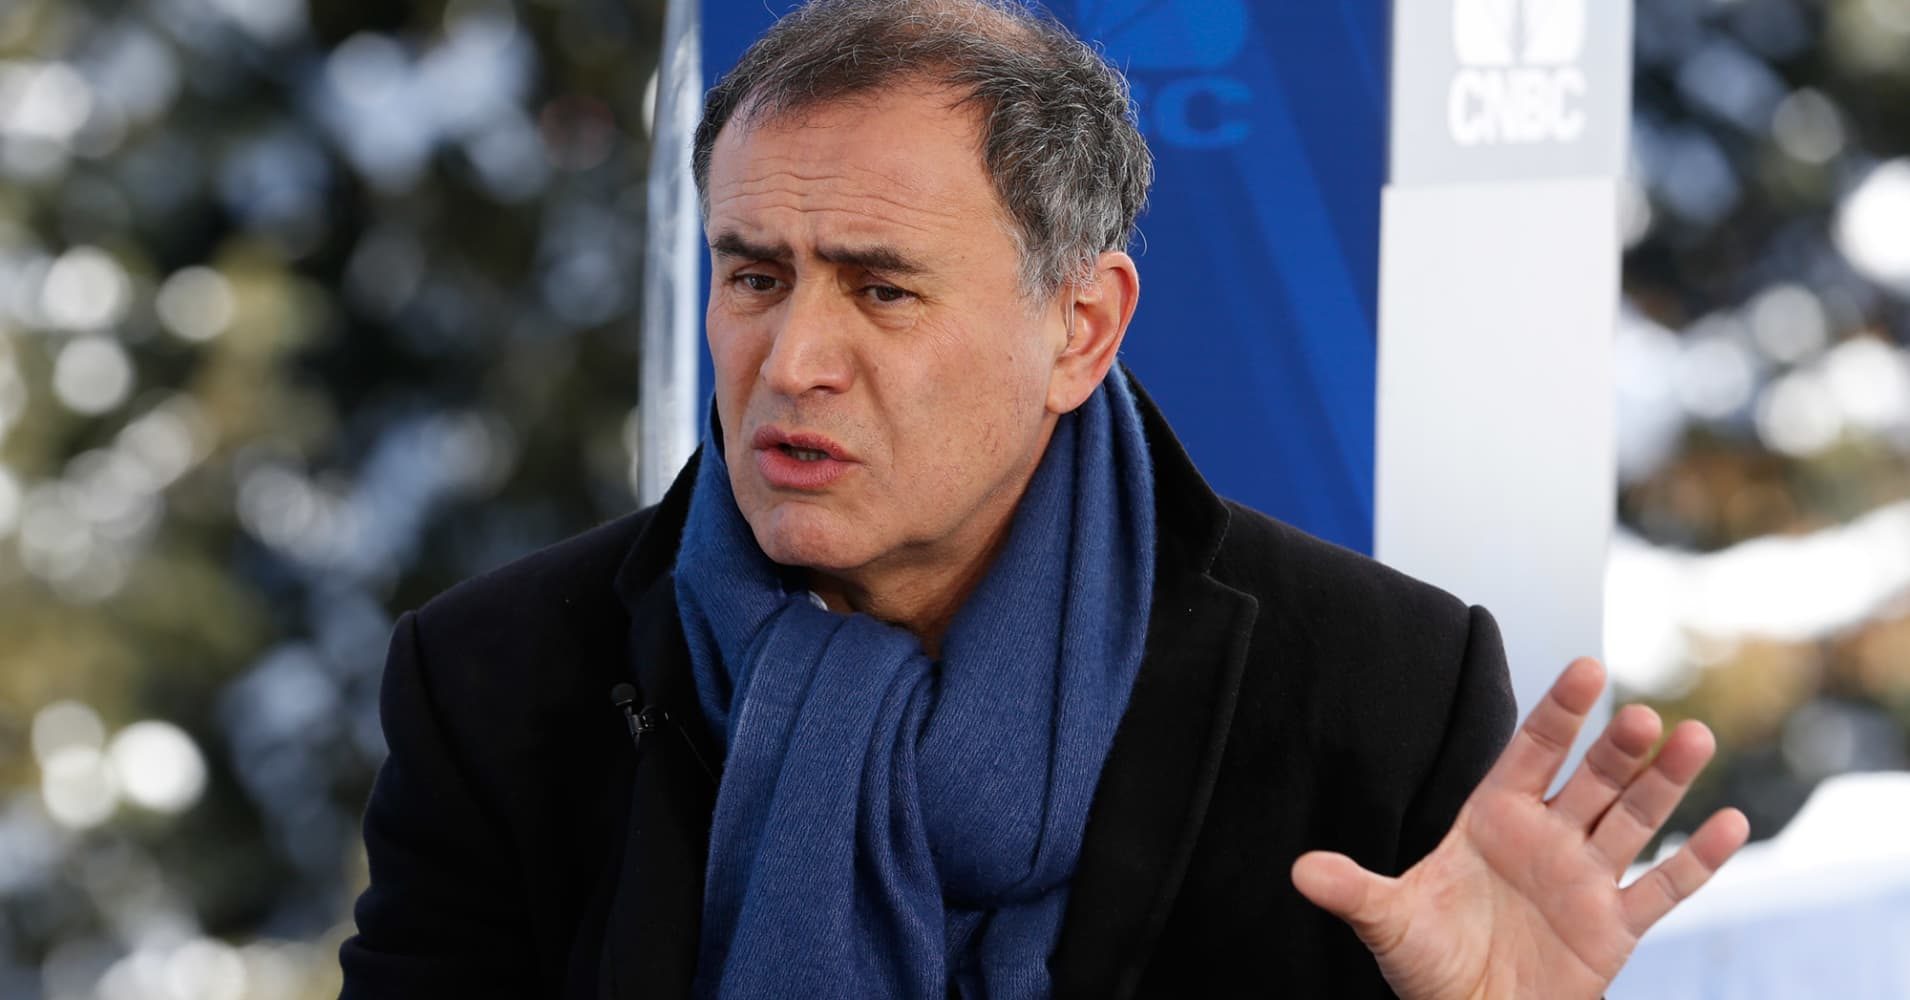 Blockchain is 'one of the most overhyped technologies ever,' Nouriel Roubini says